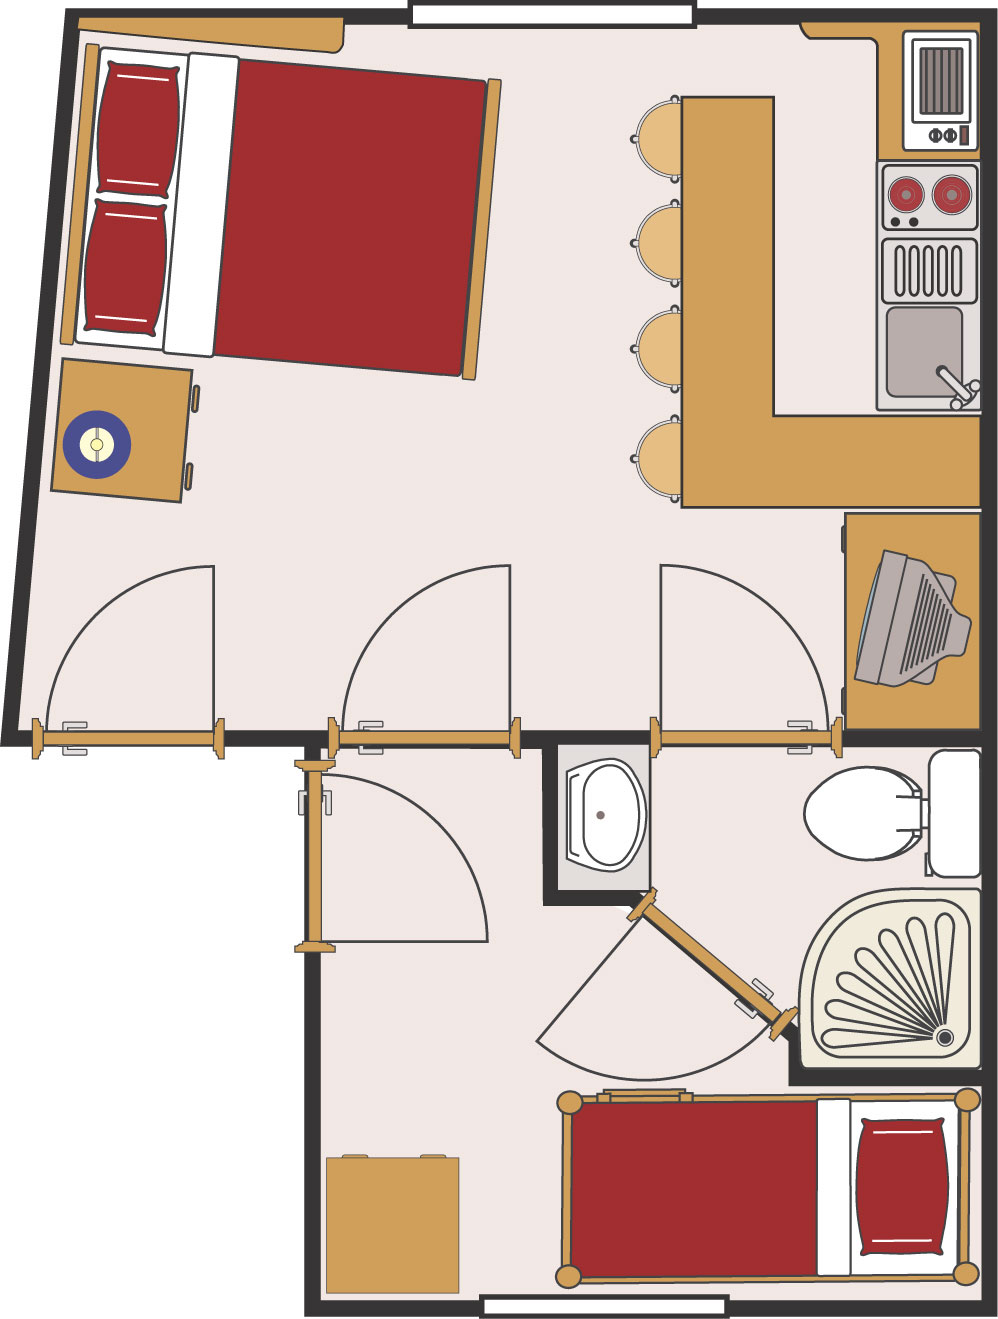 2nd floor plan (not to scale)